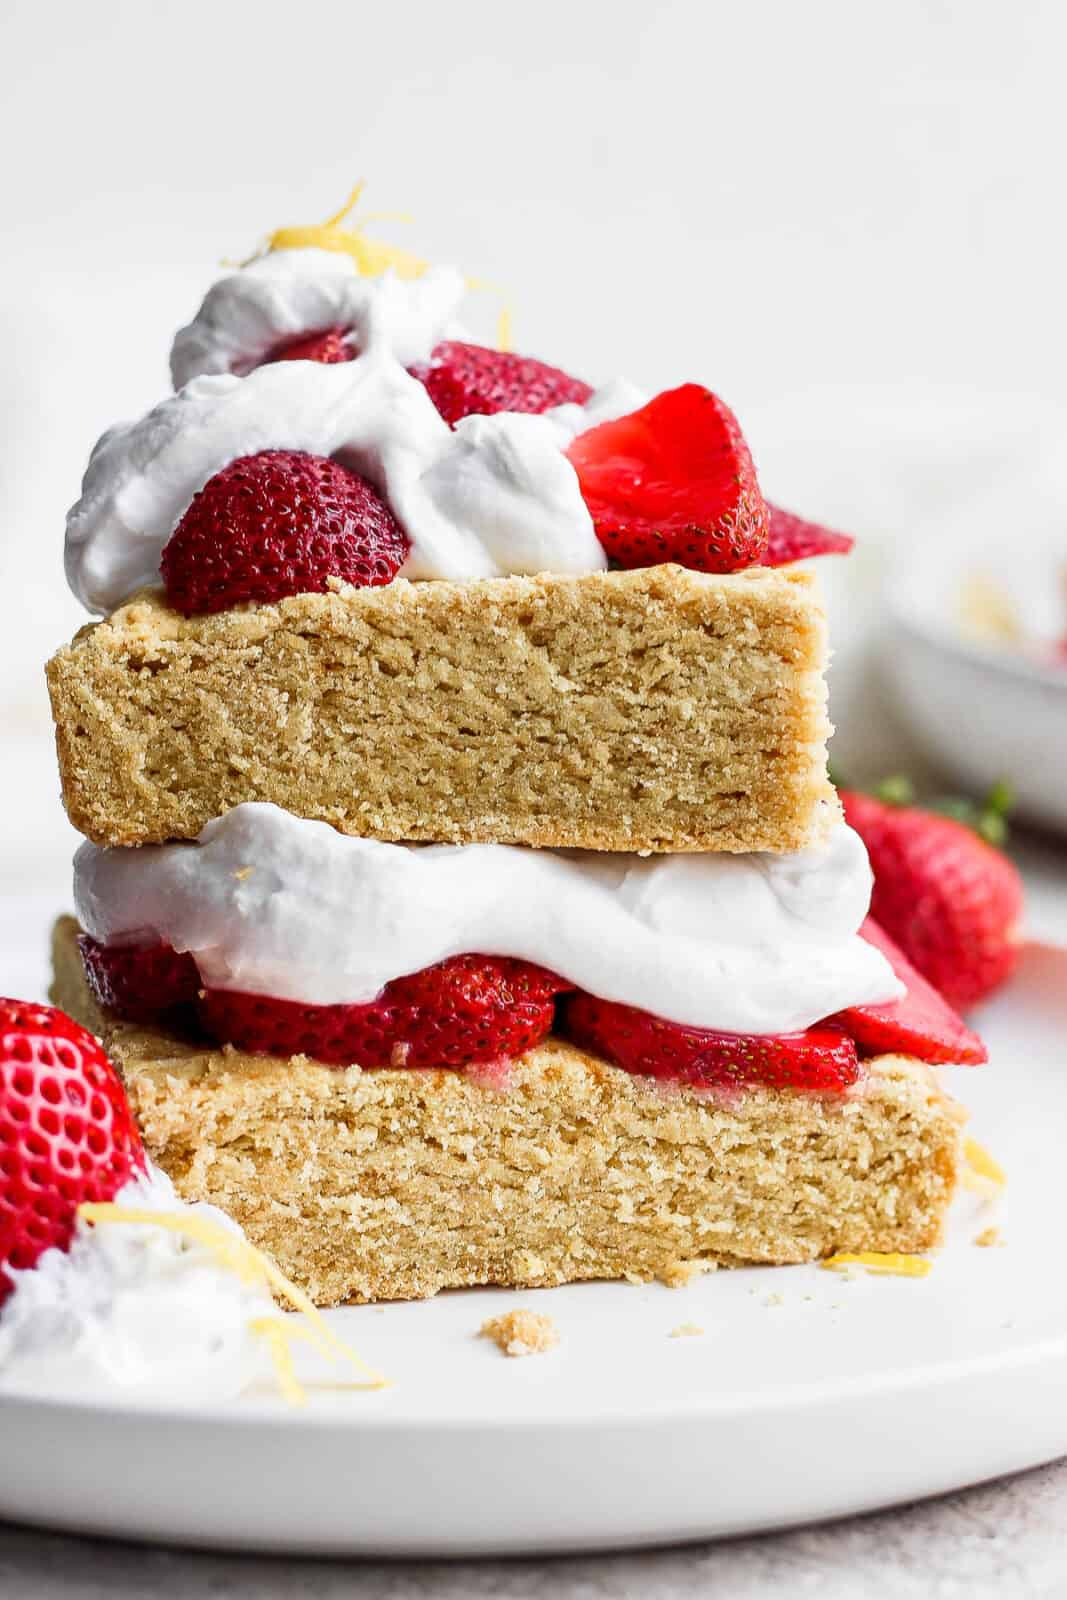 Strawberry shortcake with strawberries and whipped cream on top.